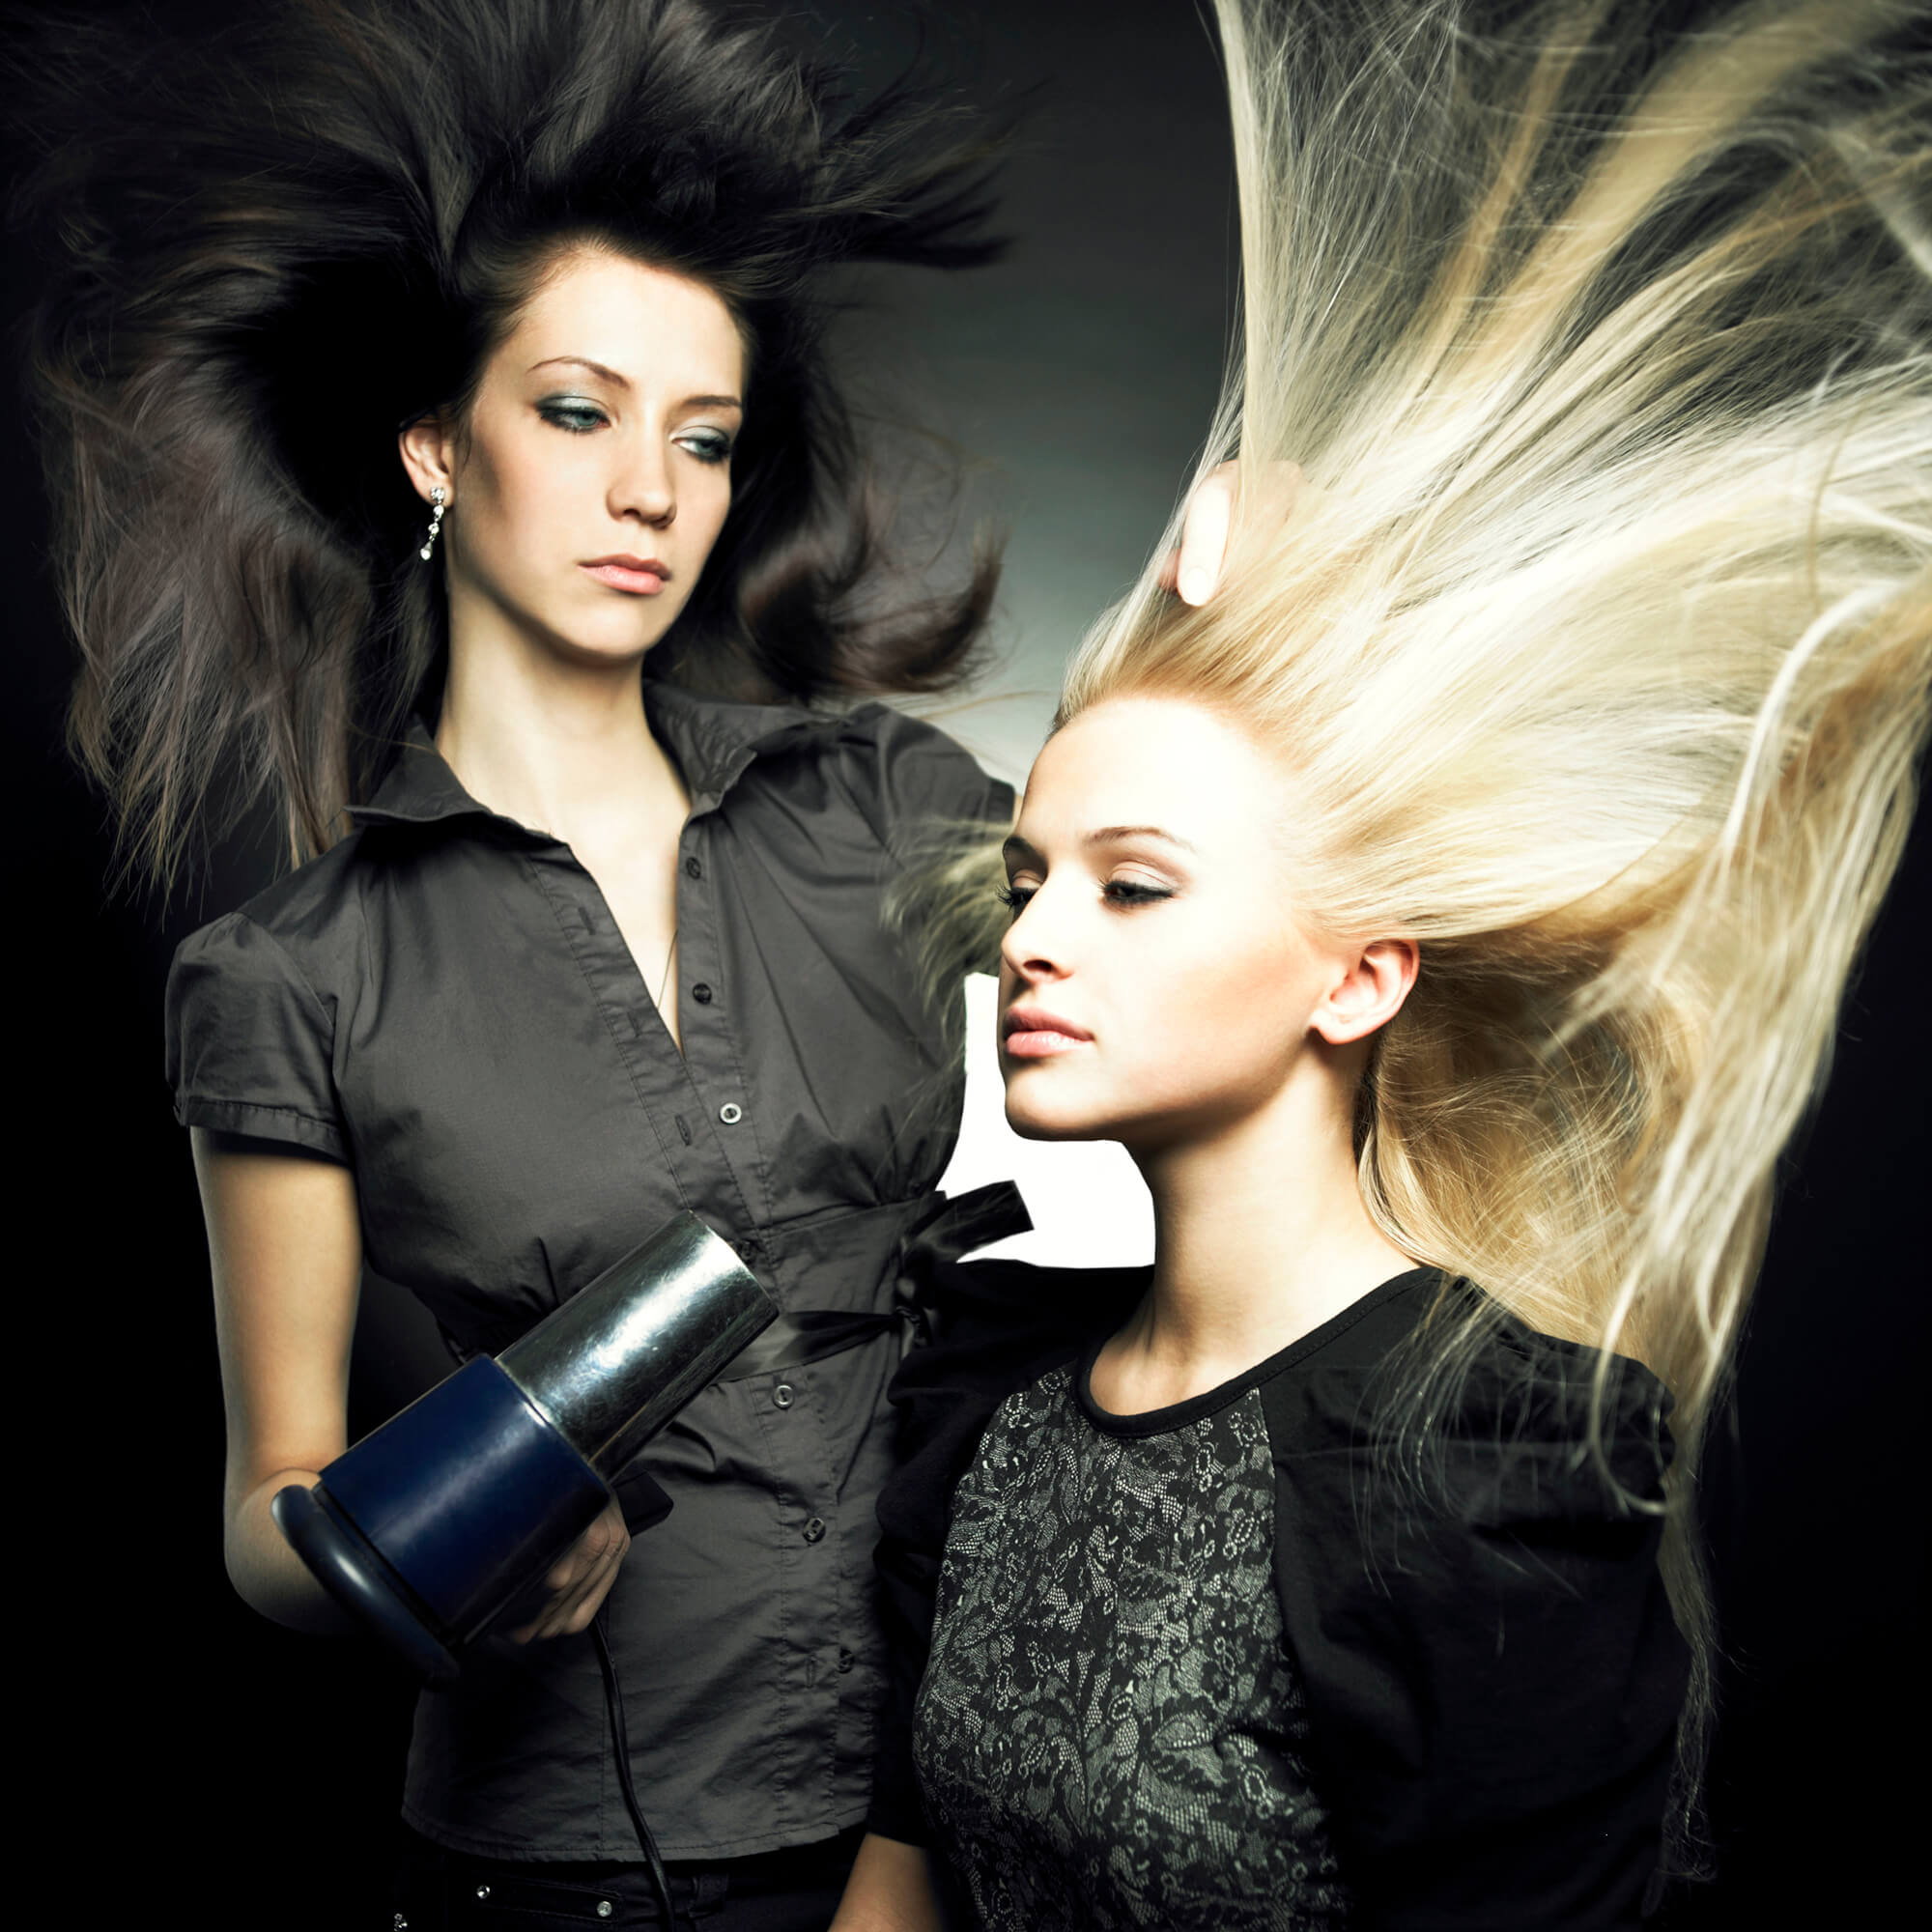 coiffeur-salon-coiffure-pully- Lutry-Lausanne